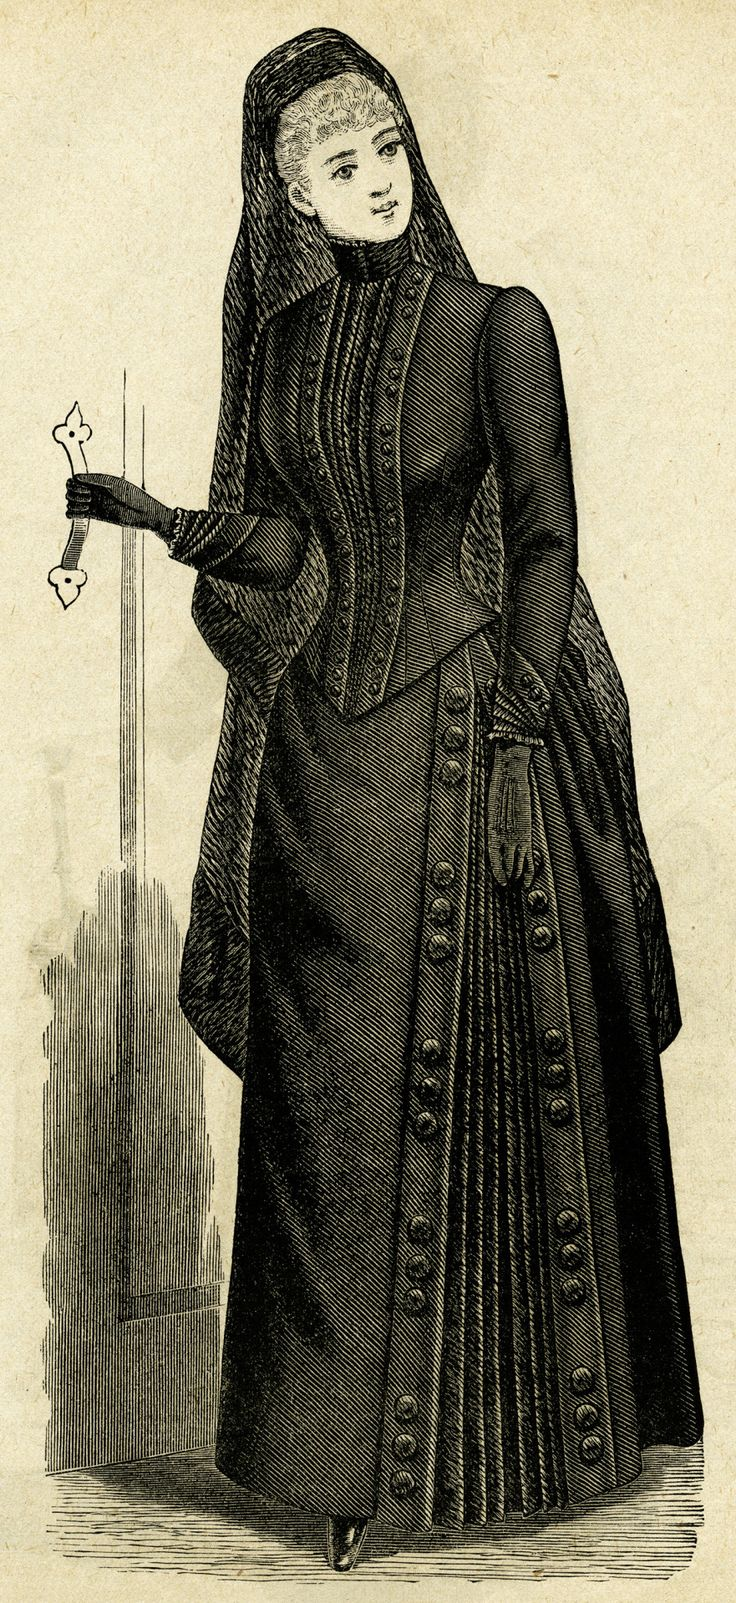 Illustration from the October 1889 issue of The Delineator Source